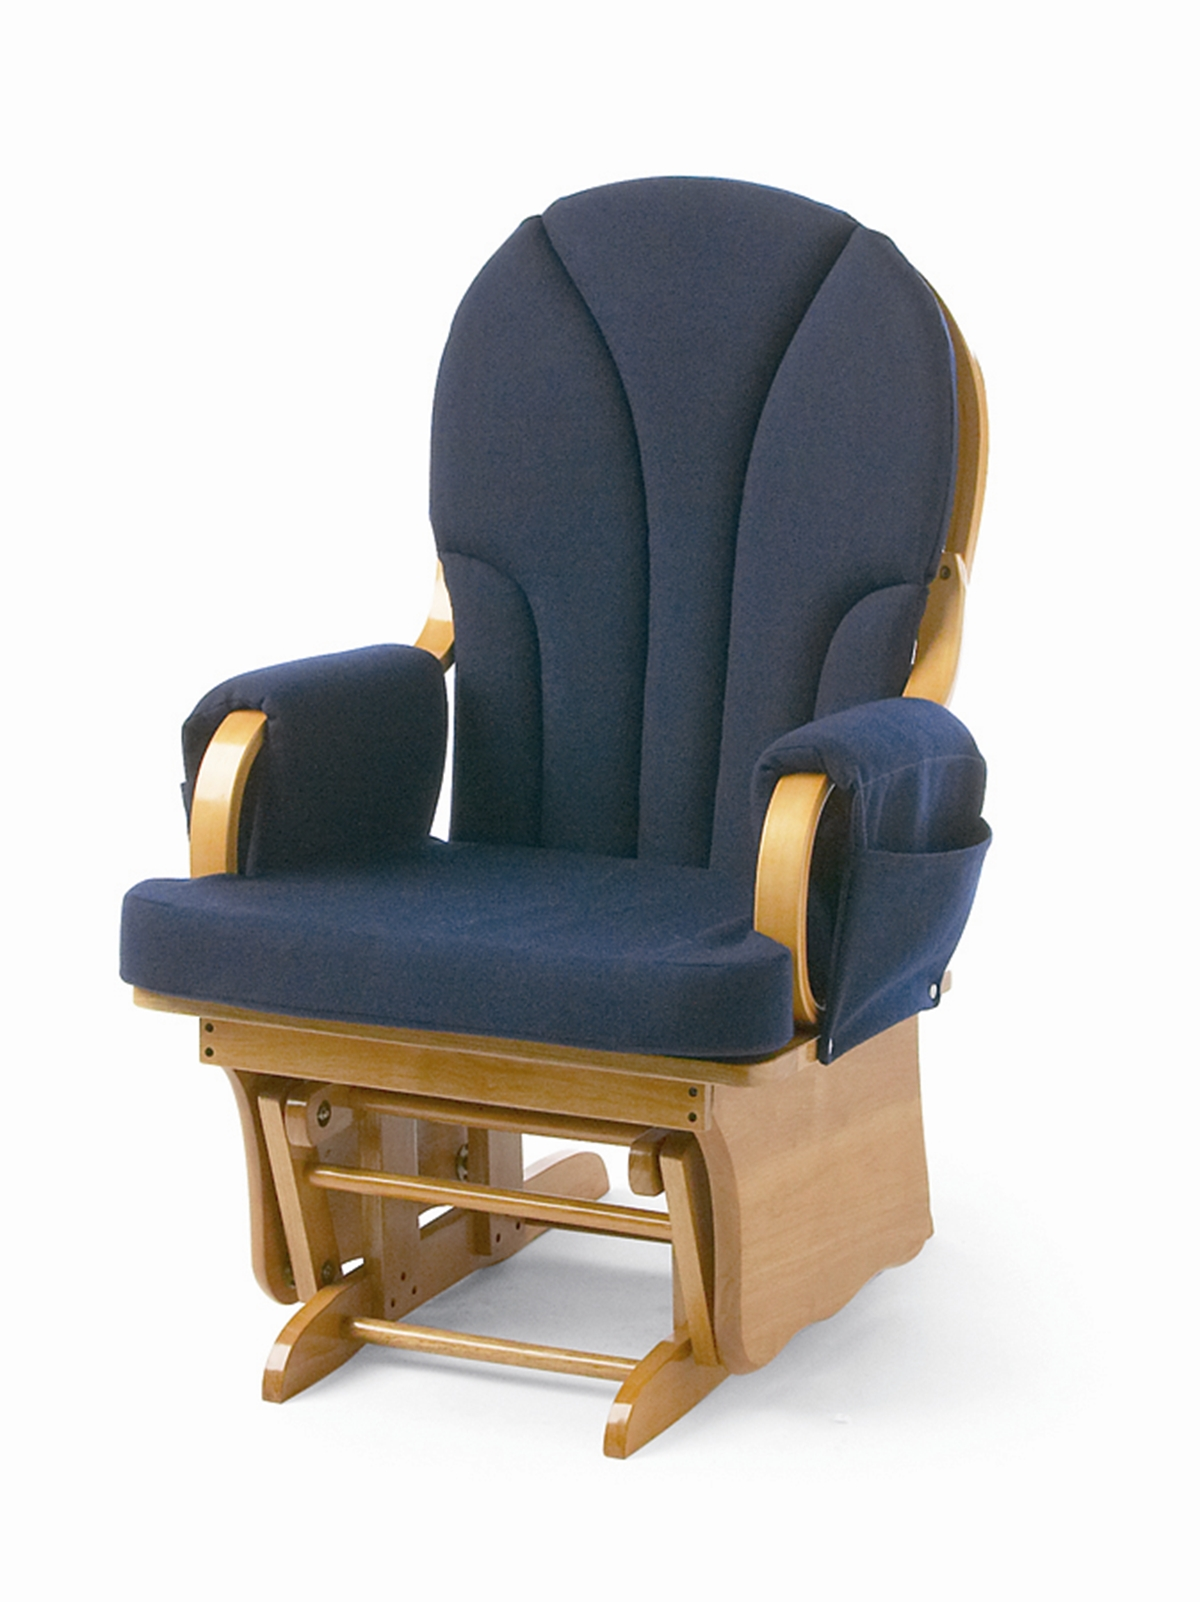 Foundations Lullaby Adult Glider Rocker  Blue  Shop Your Way Online Shopping  Earn Points on